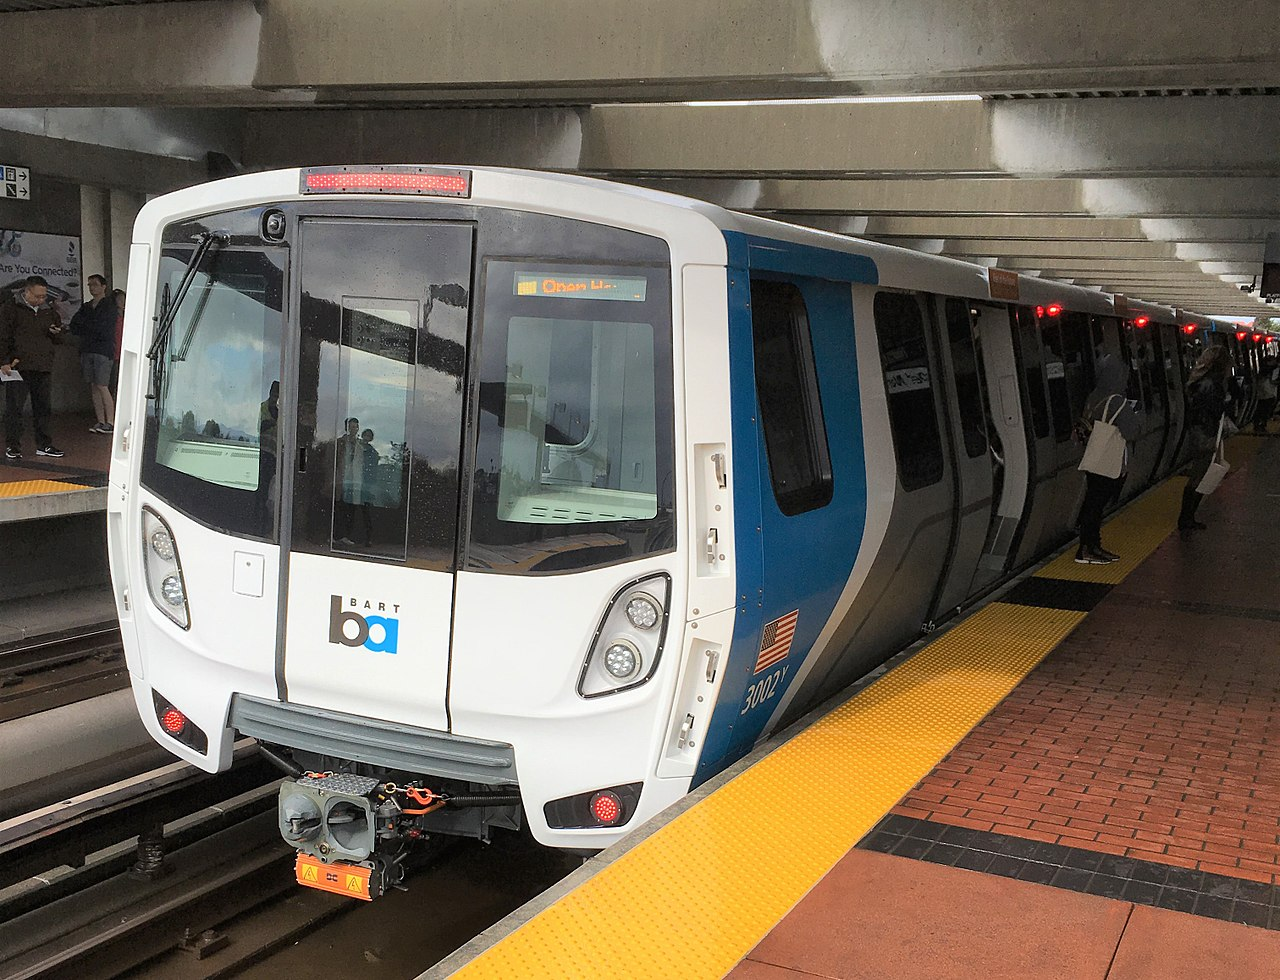 New BART fleet delayed until 2023